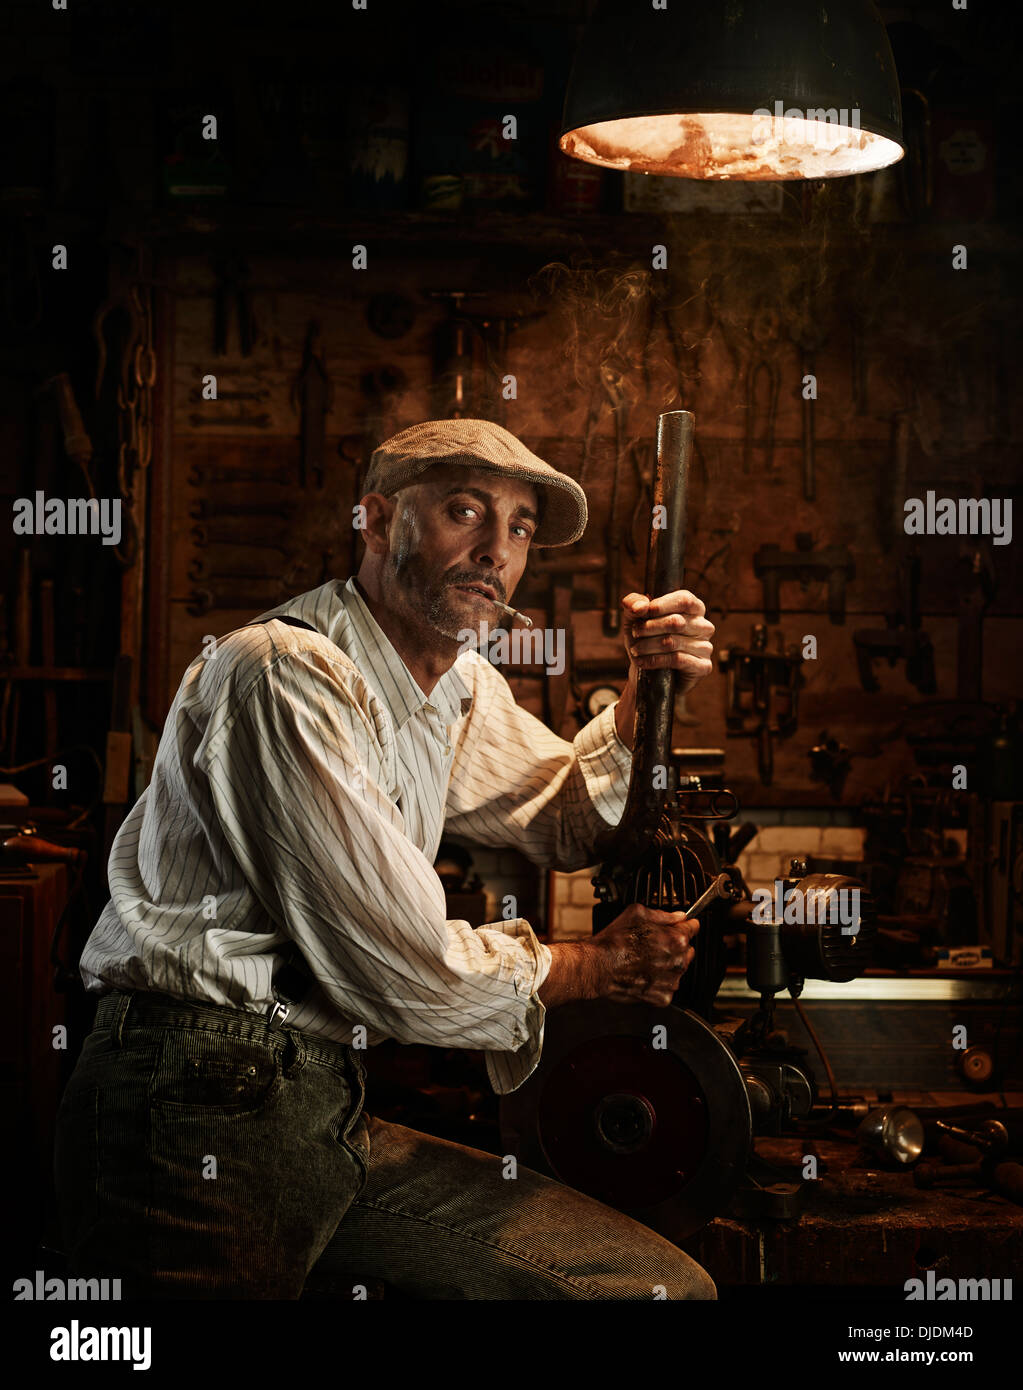 Man with hat and cigarette repairing a motor in a workshop - Stock Image